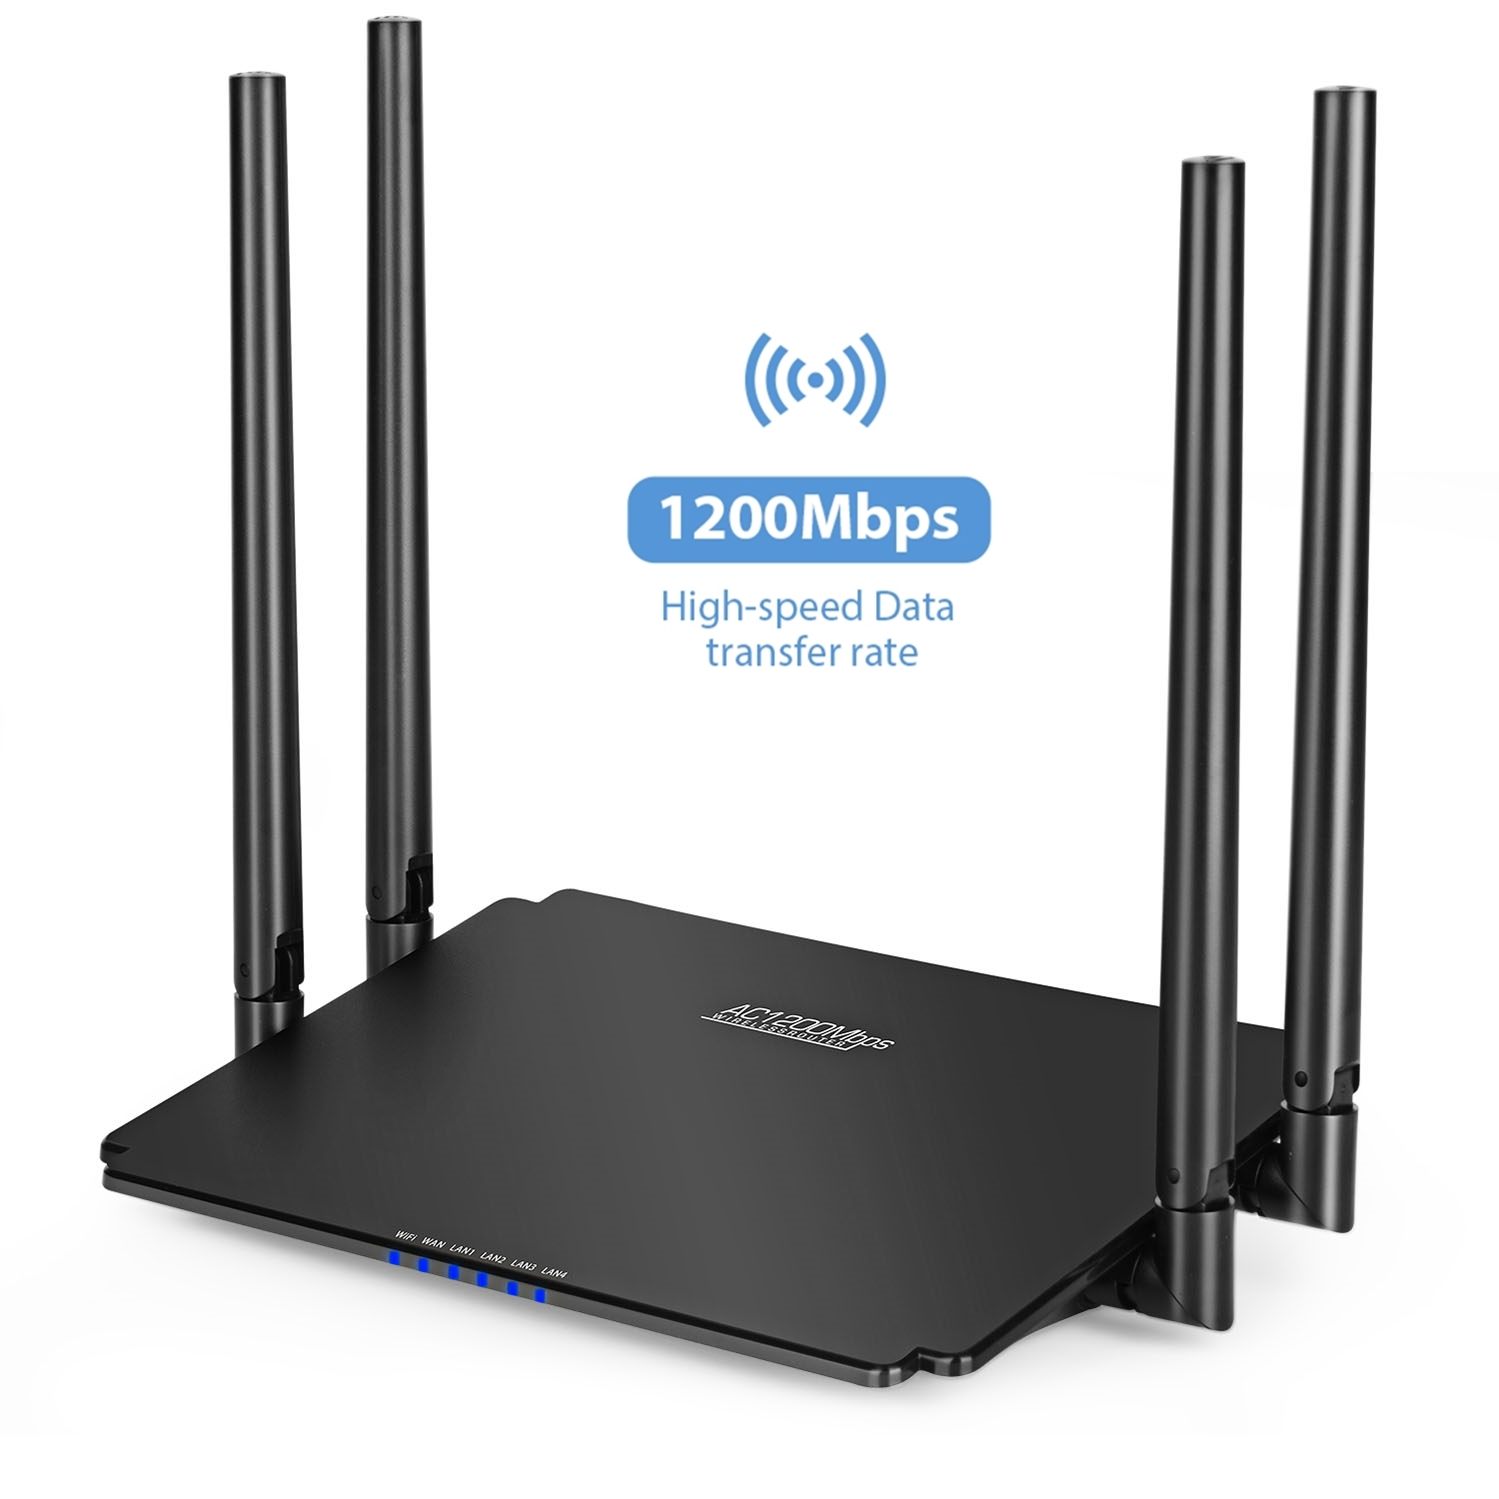 iMice Wifi Router 1200Mbps 2.4G 5G Wireless Router High Speed Dual Band wifi Repeater Access Point Smart APP Control WiFi Router